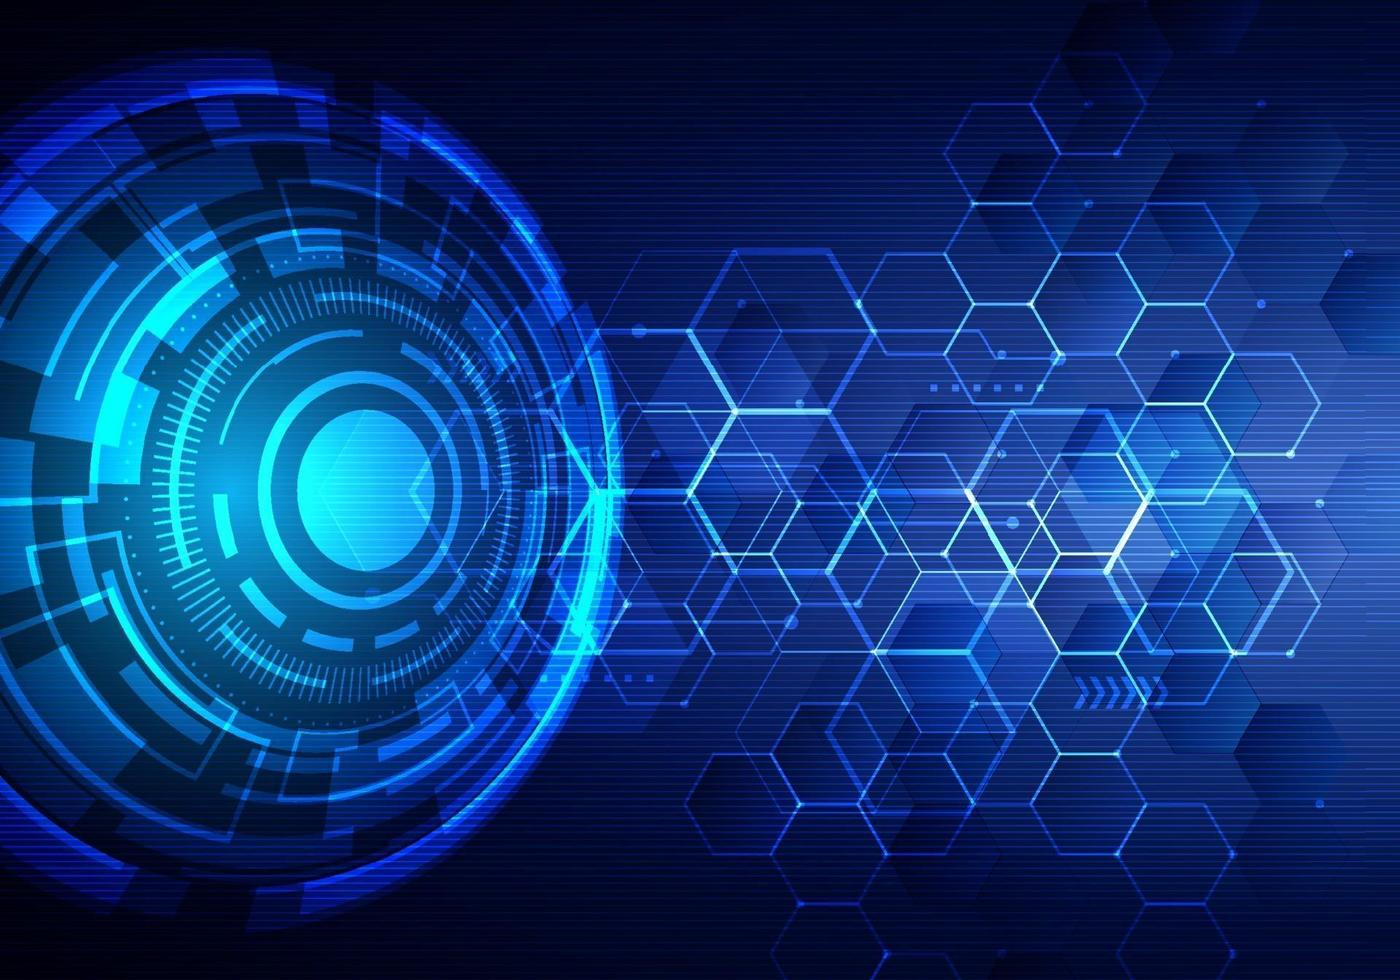 Abstract technology futuristic transfer digital data network to center concept. Blue circle internet tech background vector